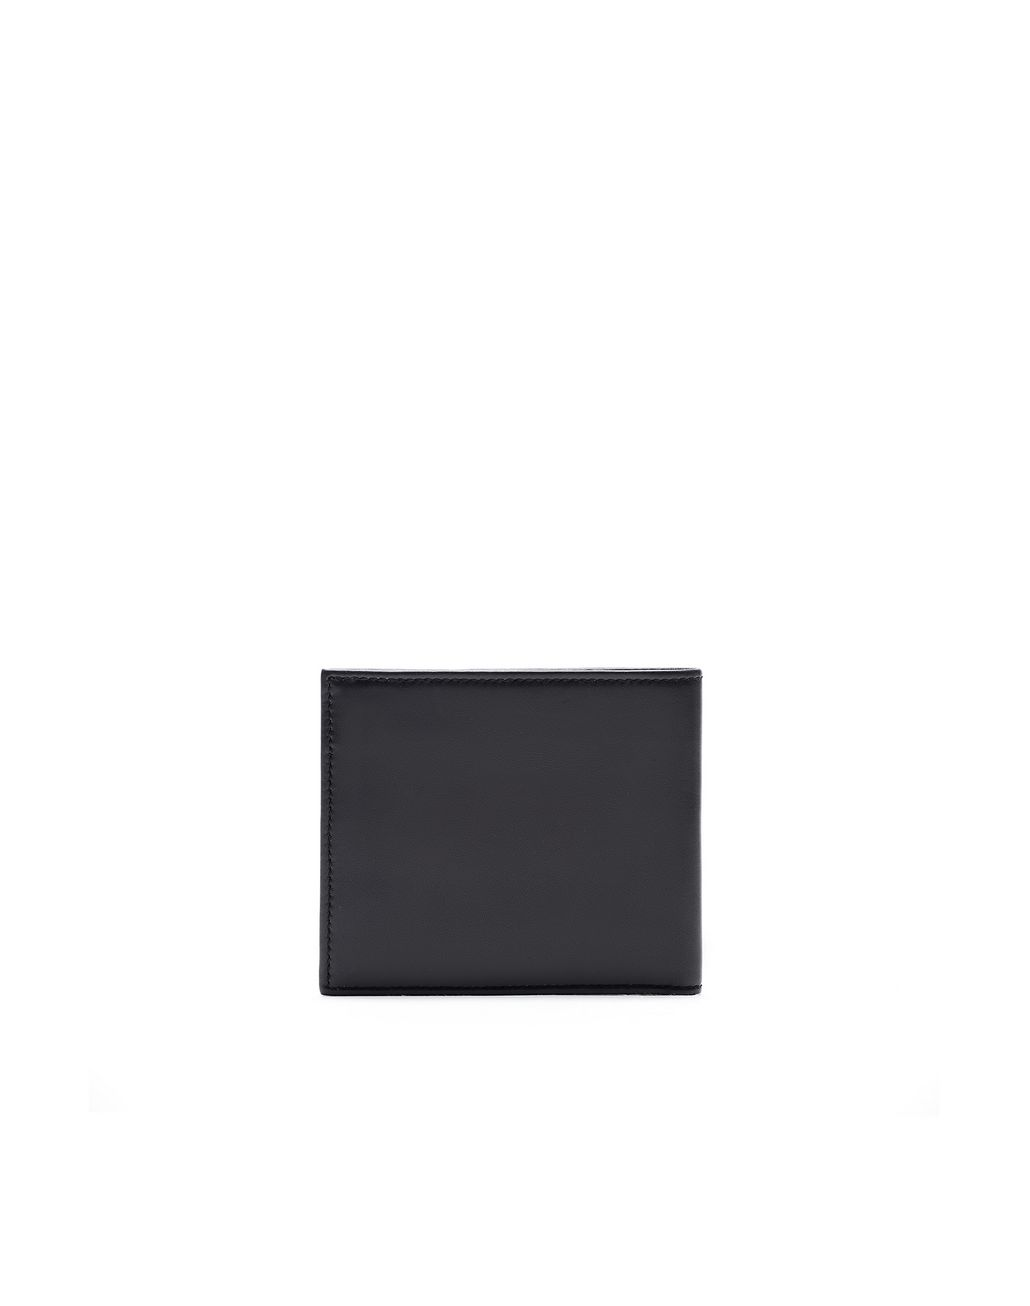 BRIONI Midnight Blue Calfskin Wallet Wallet Man d